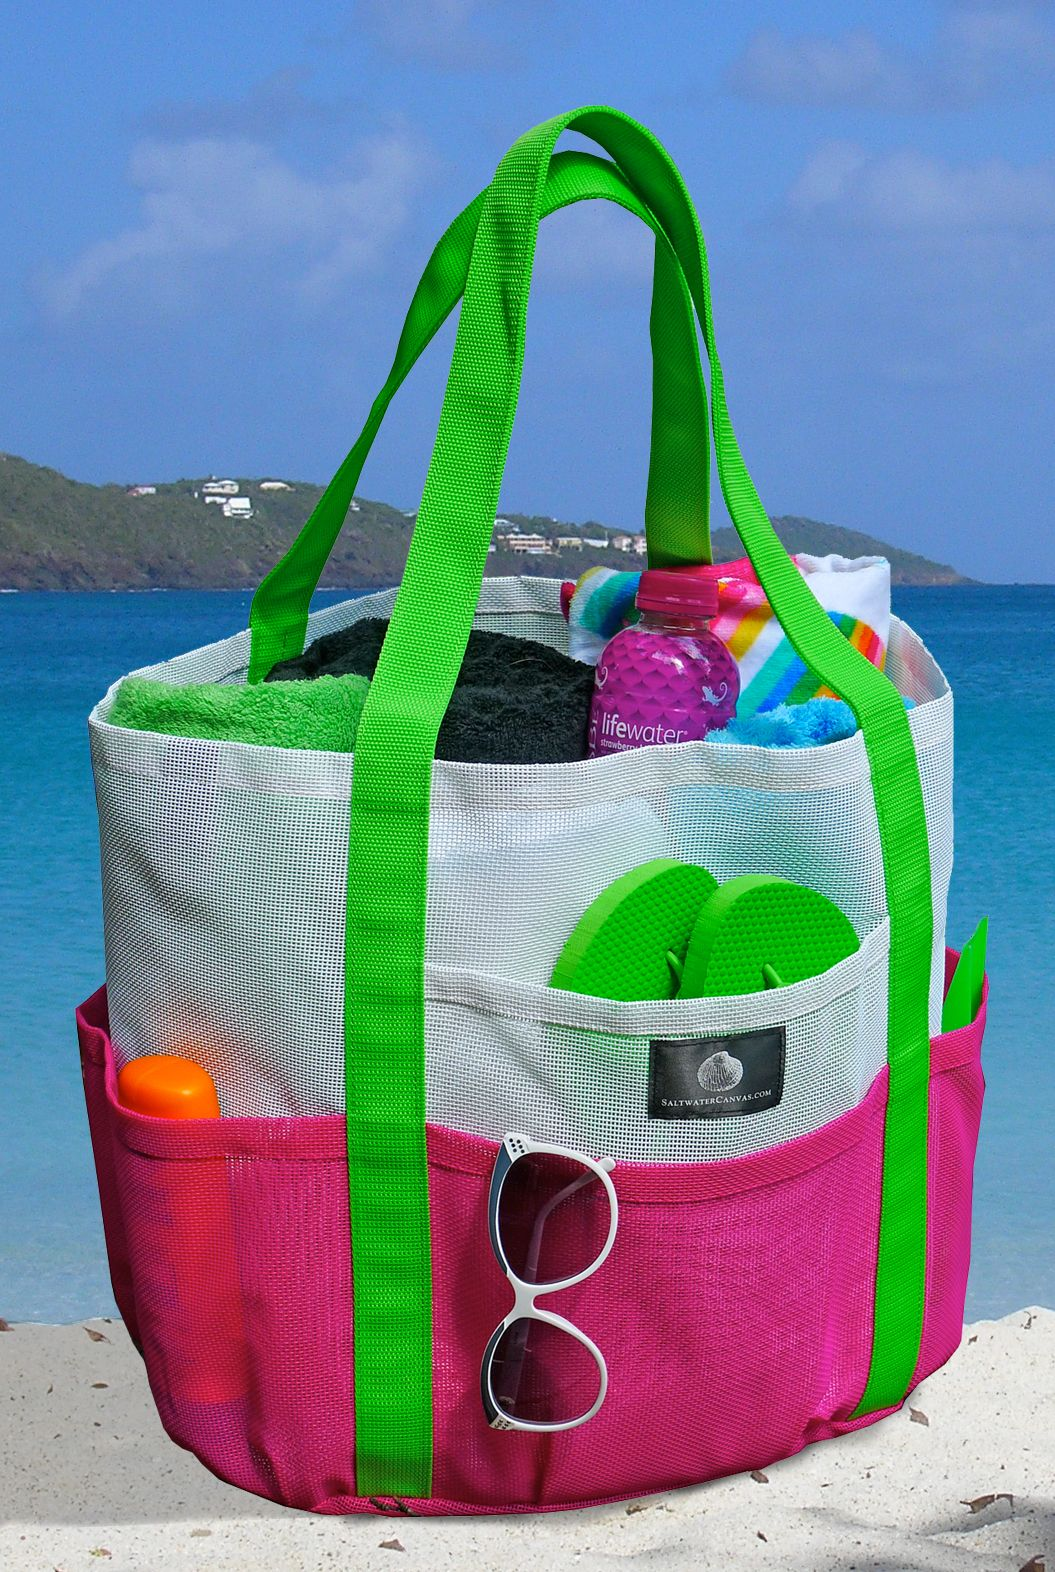 beach bag | Behold, the Ultimate Beach Bag | BEACH BAGS/TOTES ...